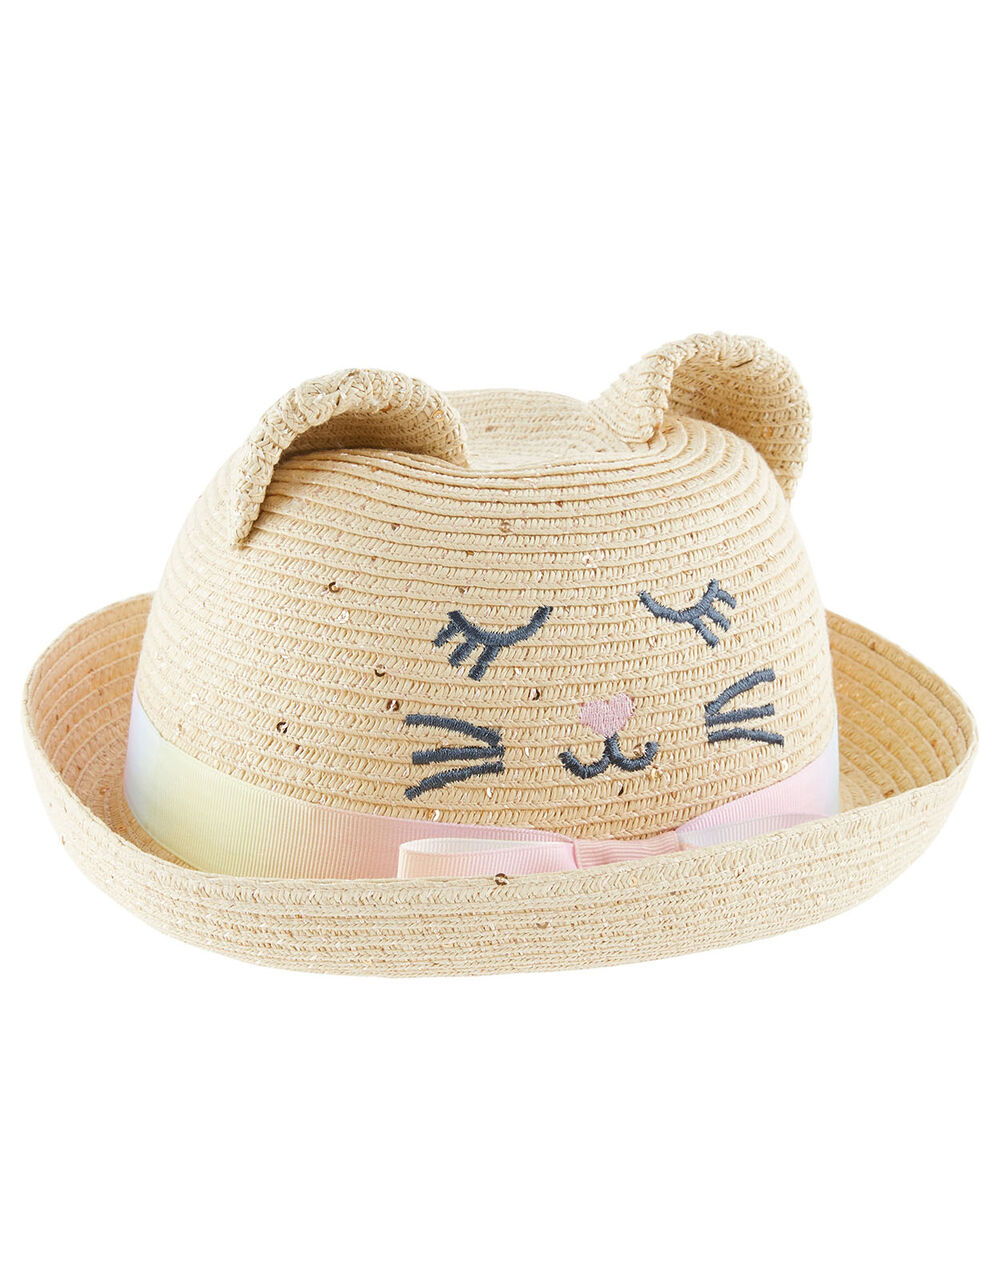 Baby Kitty Sequin Bowler Hat, Natural (NATURAL), large